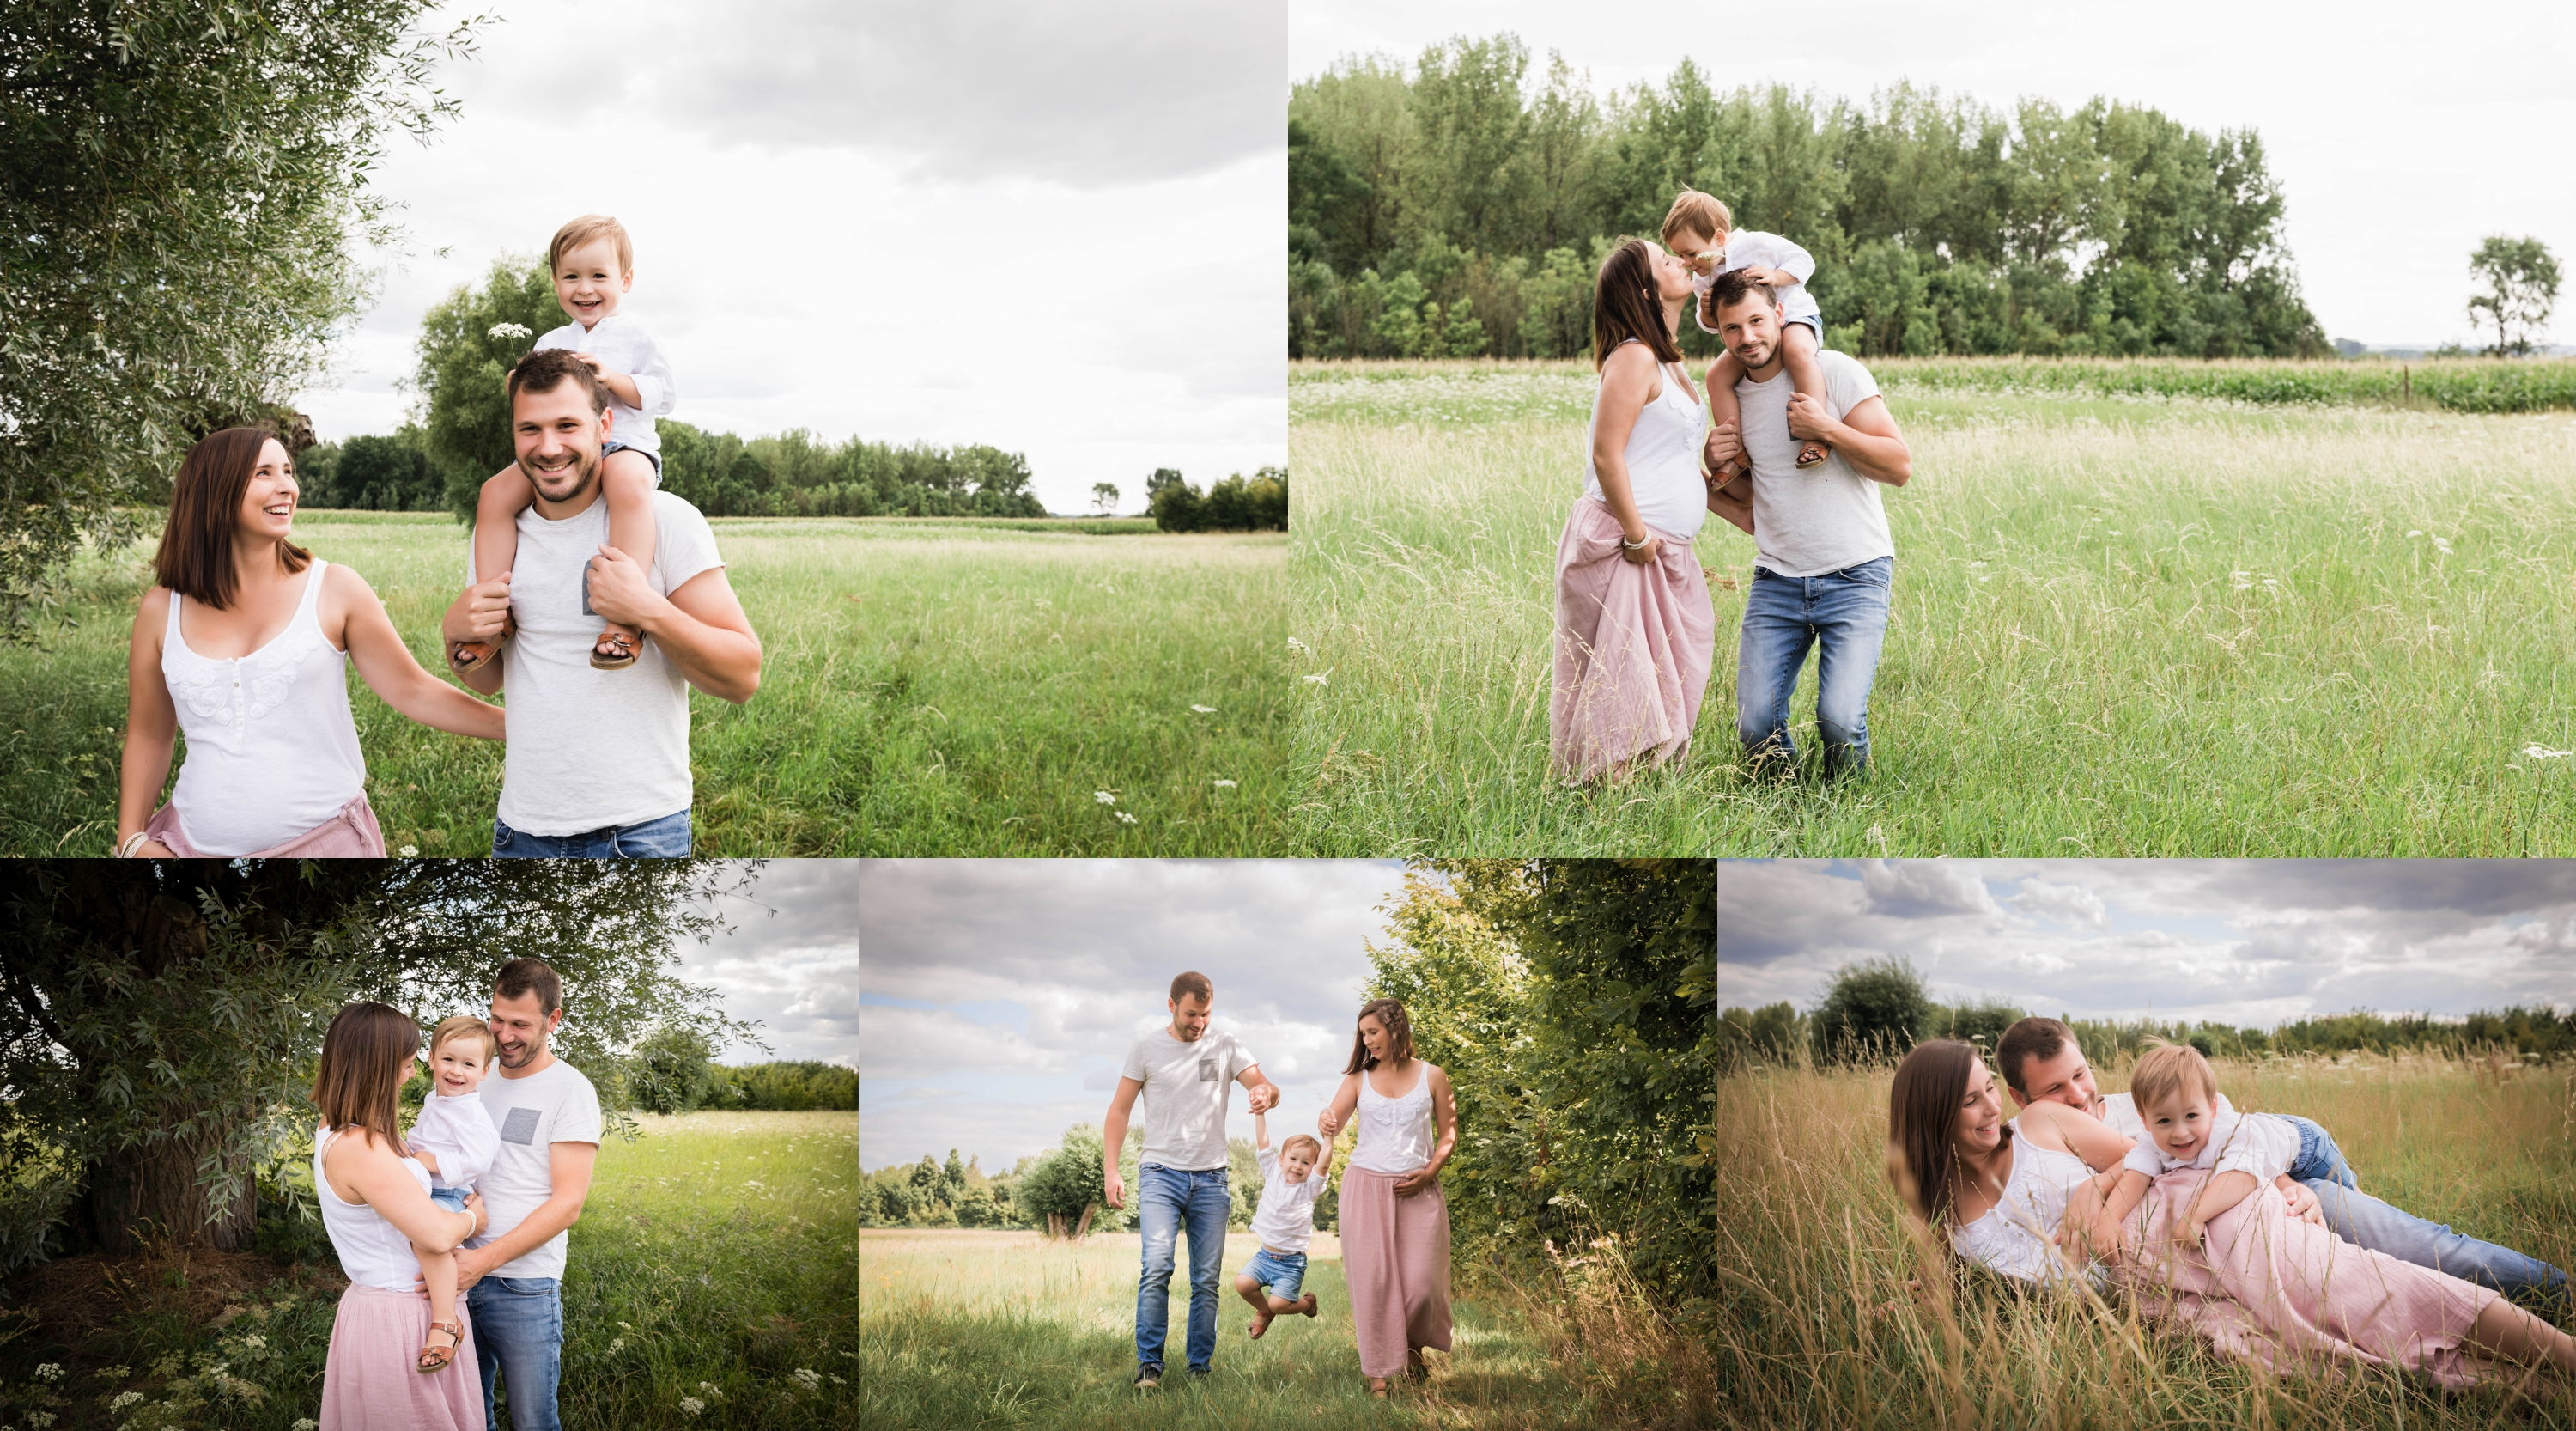 Outdoor maternity photo session with dad and sibling by Manhattan maternity photographer